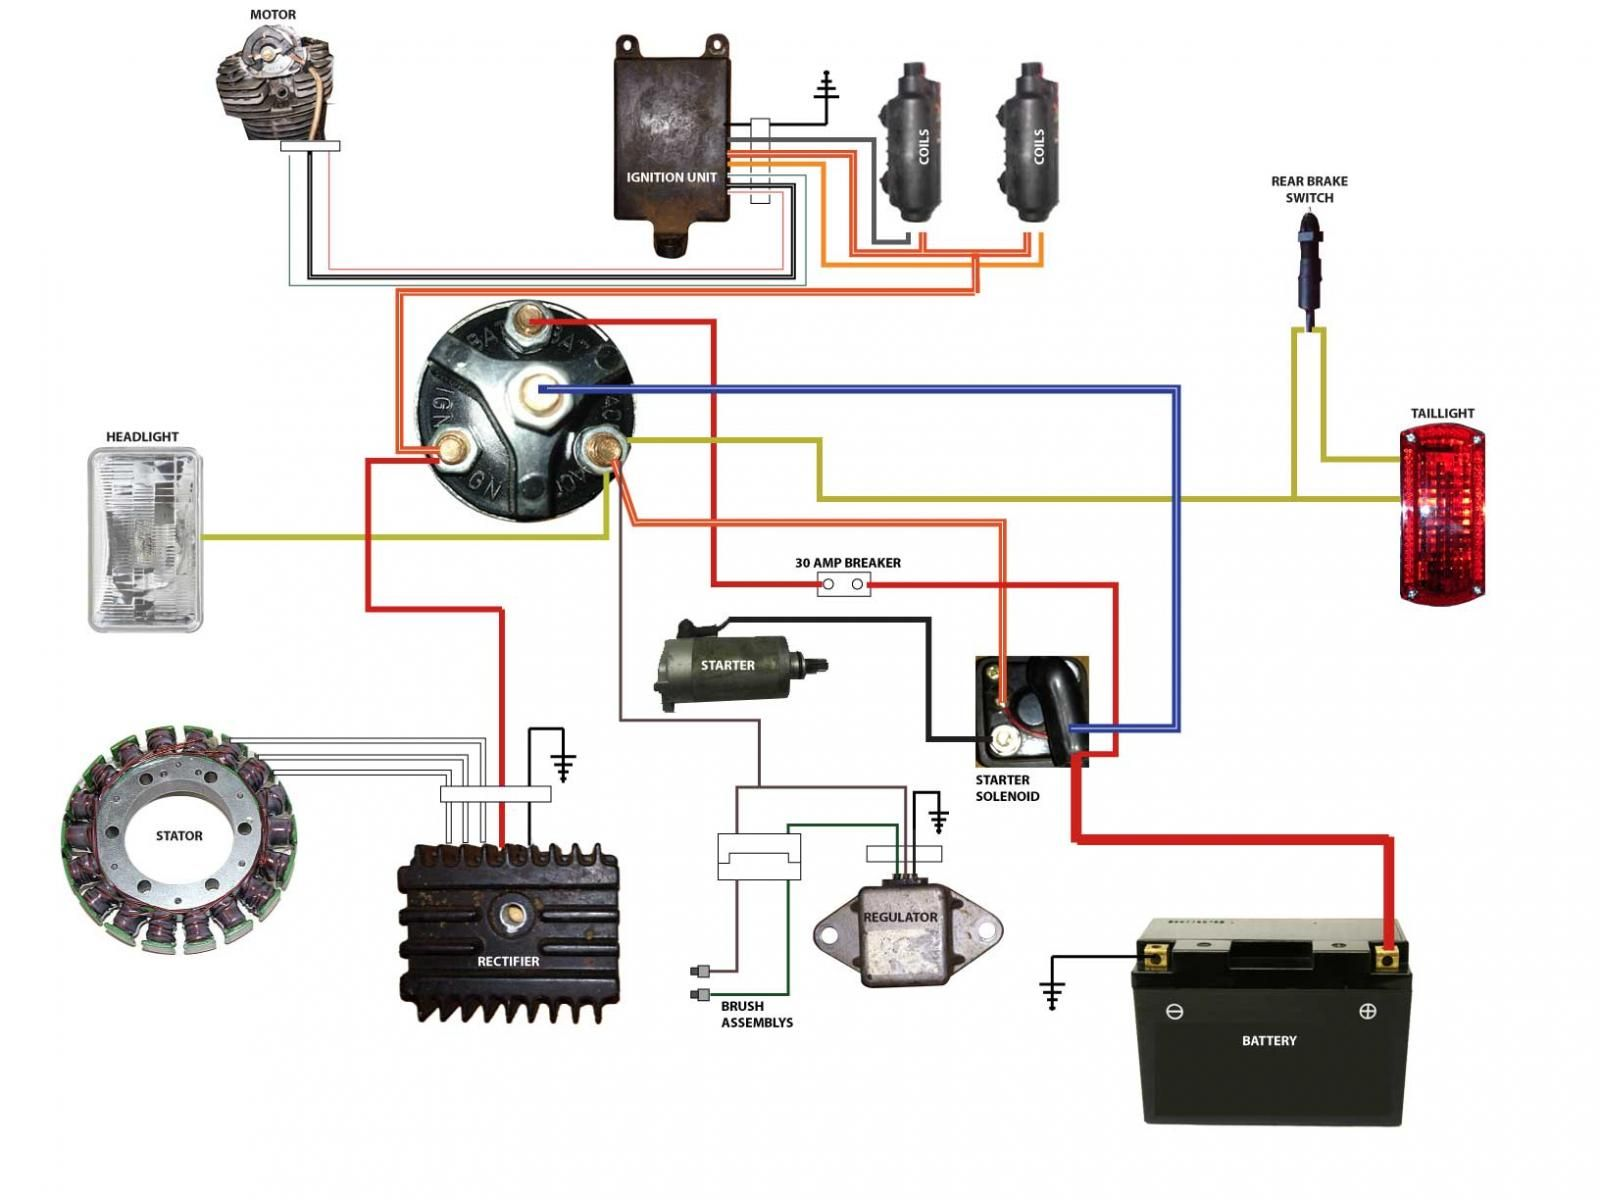 Simplified Wiring Diagram For Xs400 Cafe Projects To Try Honda Cb550 Wiring  Diagram 1979 Yamaha Xs400 Wiring Diagram